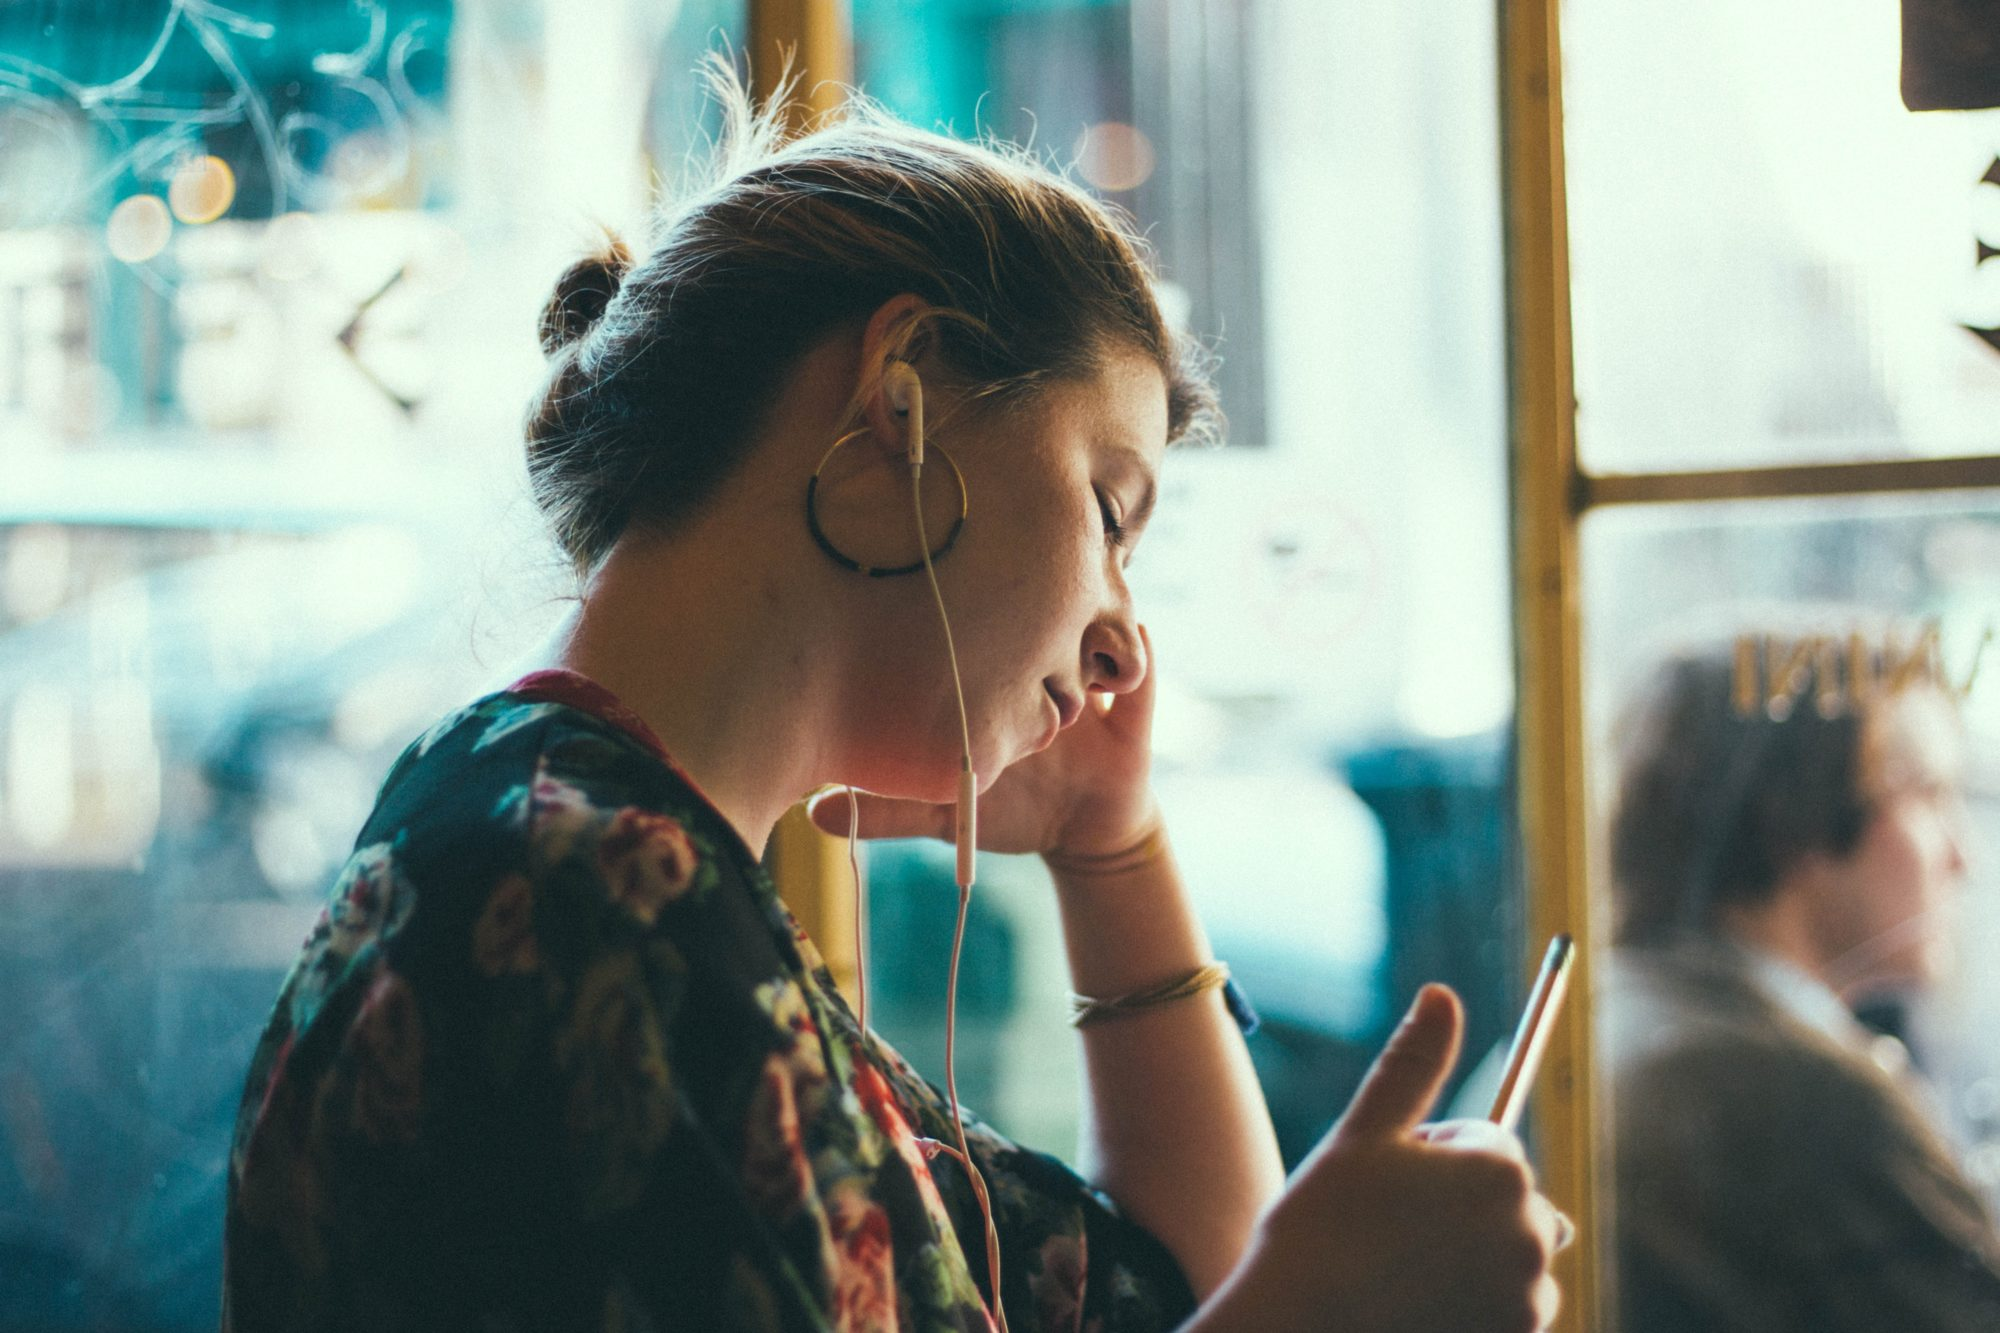 a woman sits in a cafe with her headphones in. she is looking at her phone and looking calm.